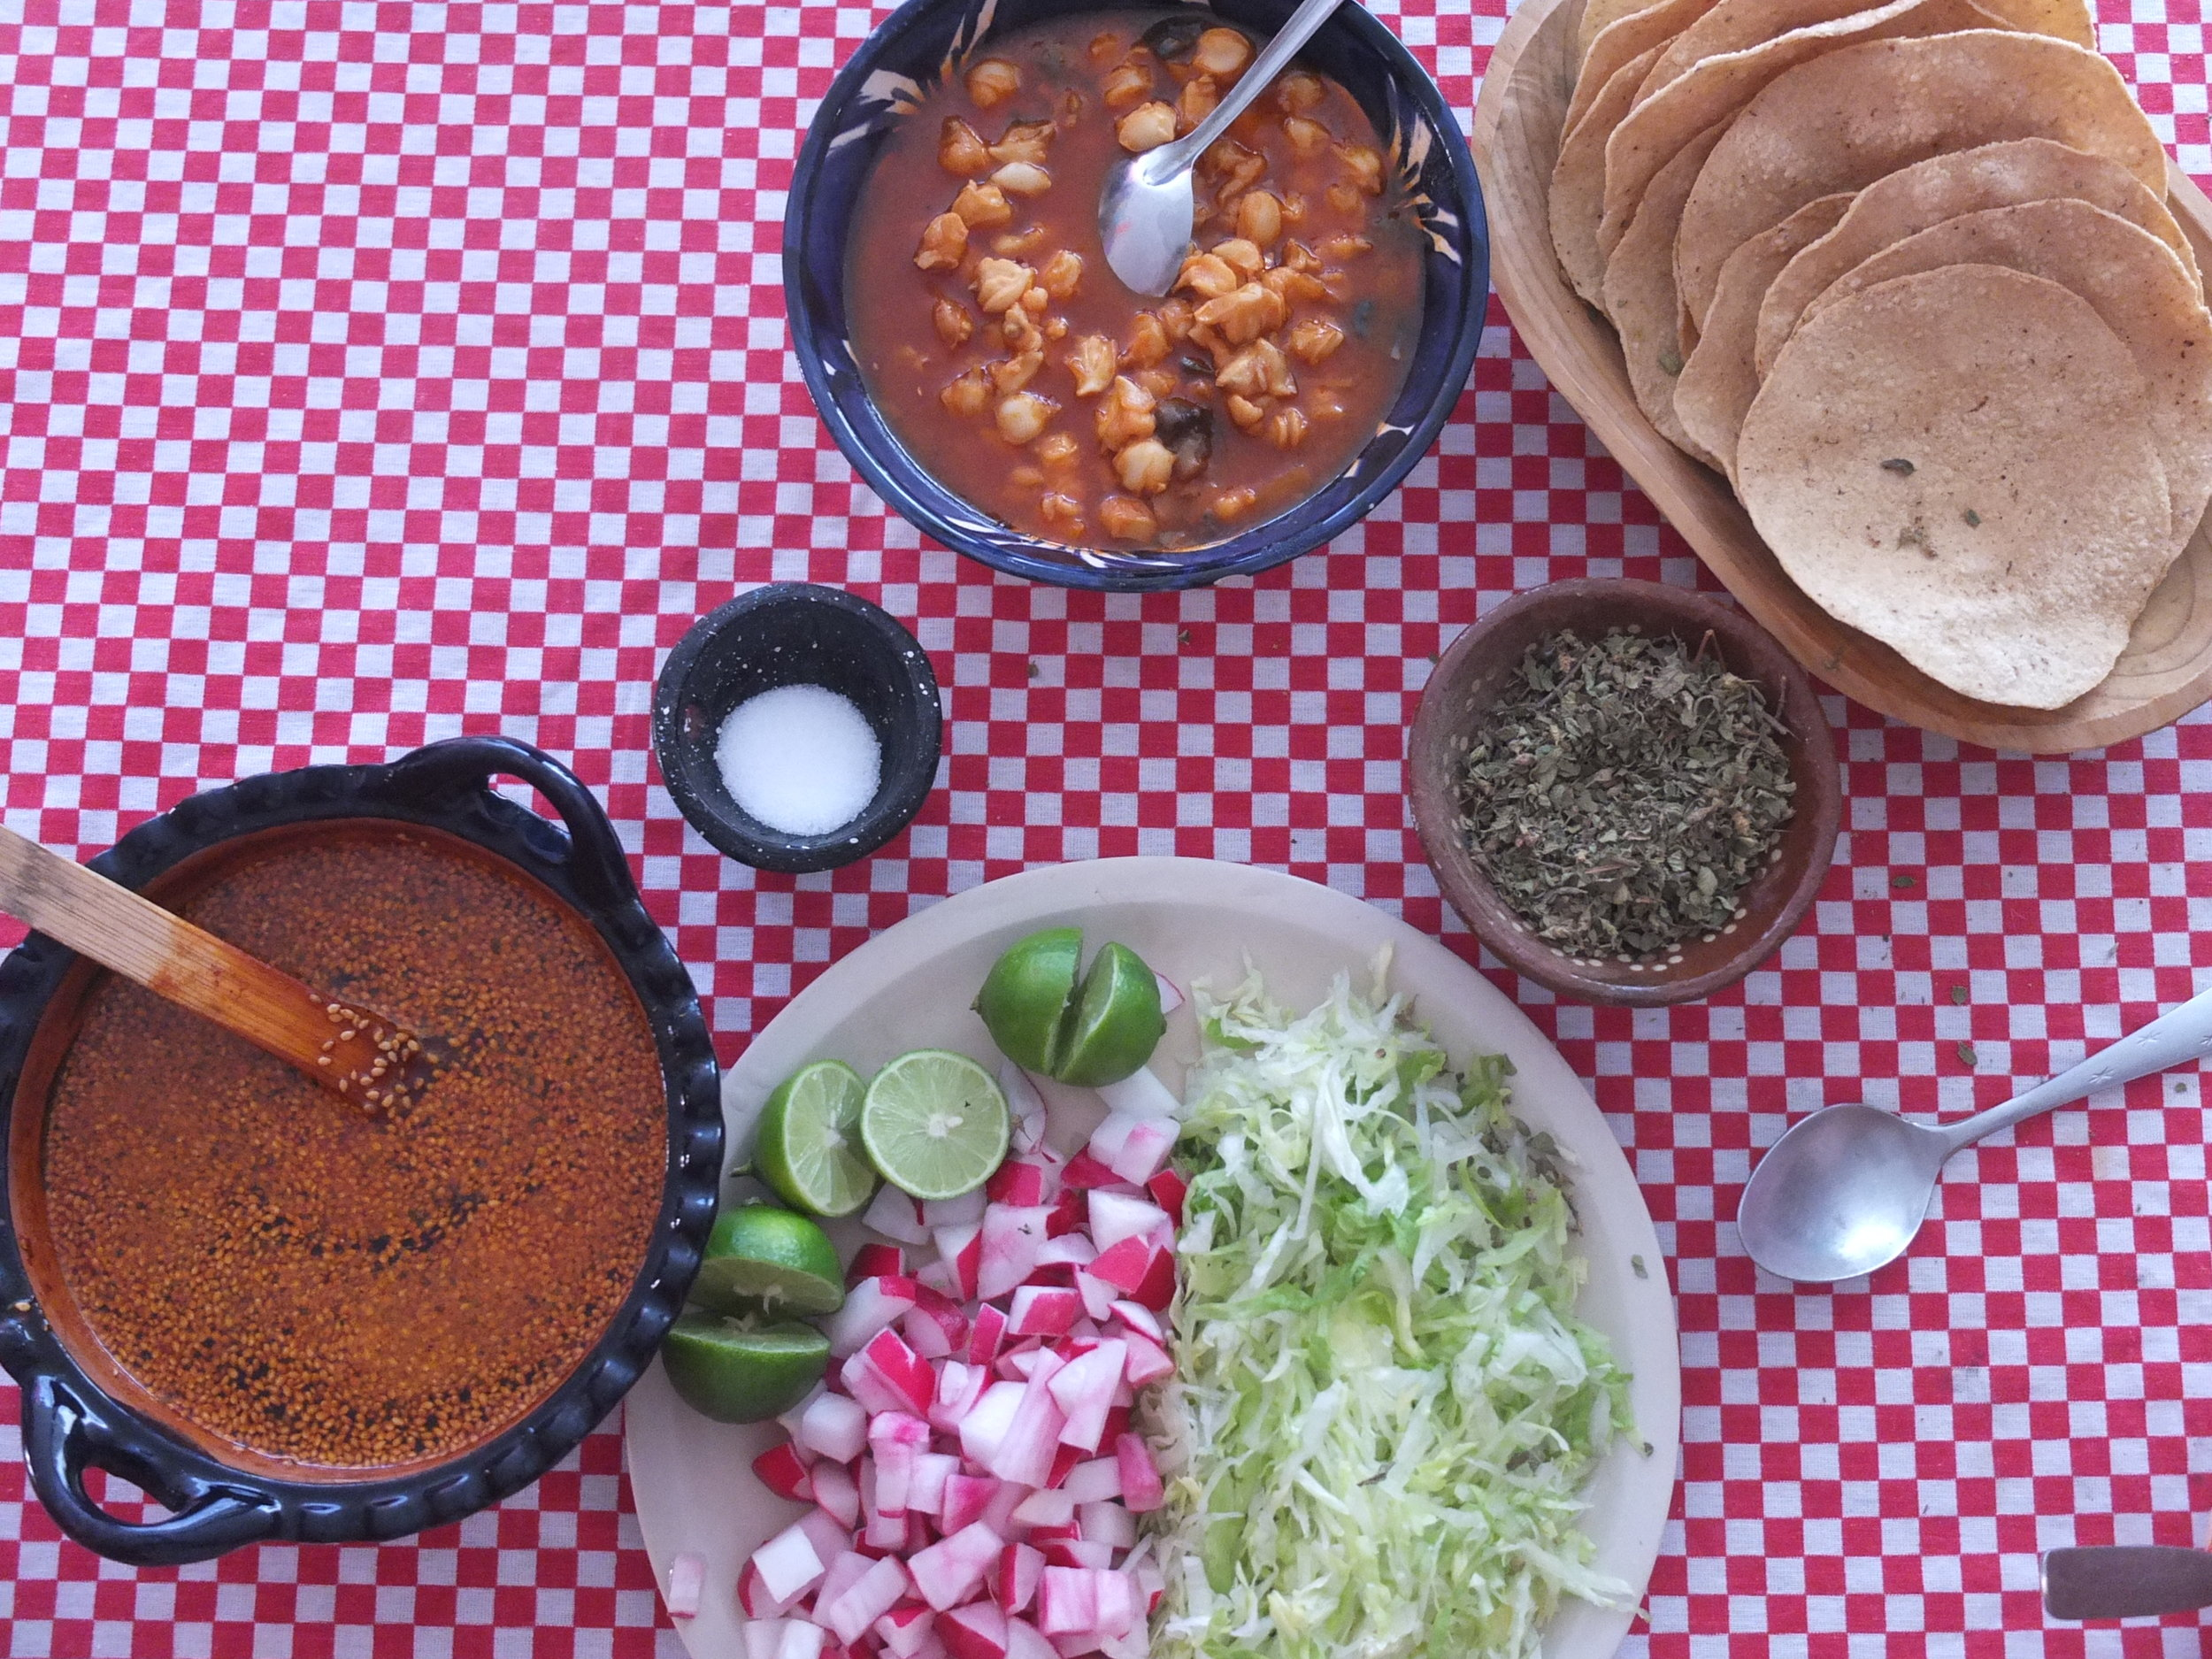 INDIGENOUS FOOD HAS GONE A LITTLE ASTRAY IN U.S. MEXICAN RESTAURANTS HOWEVER, TRUE INDIGENOUS FOOD IS A MEDICINAL, SPIRITUAL EXPERIENCE